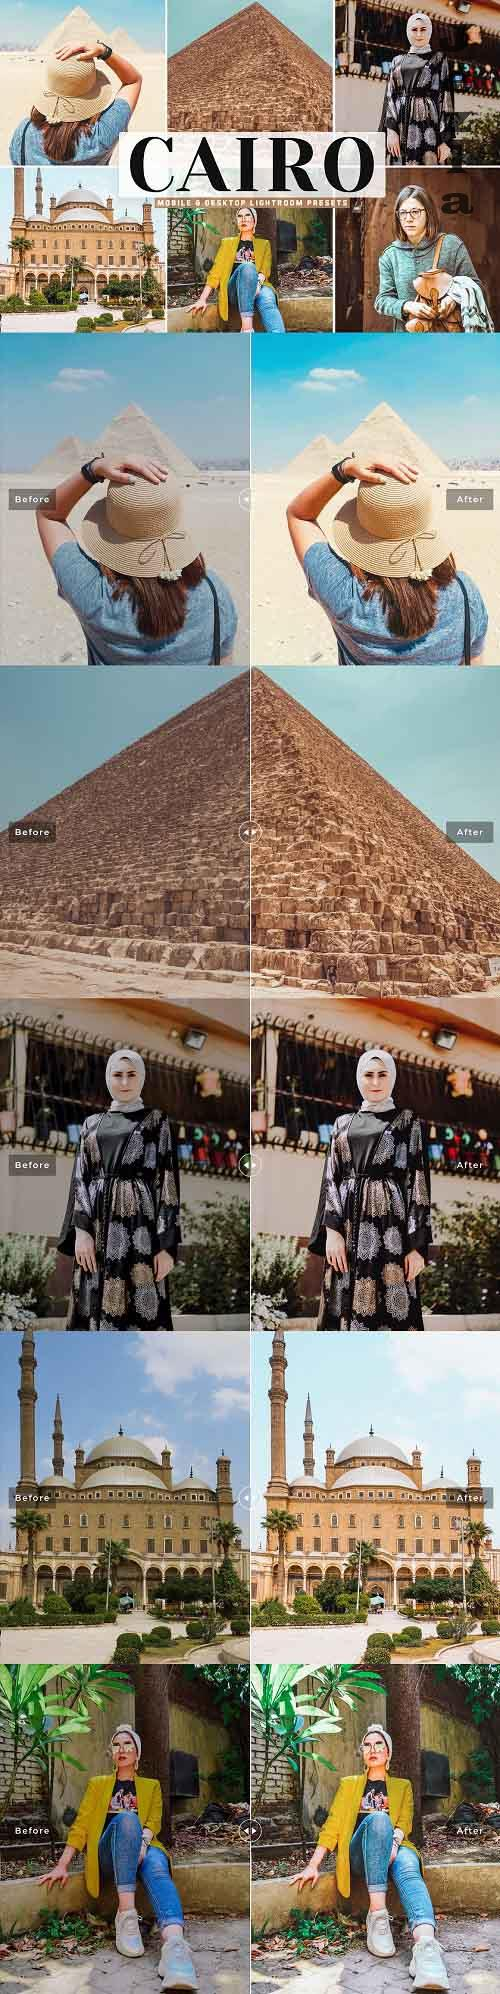 Cairo Pro Lightroom Presets - 5479378 - Mobile & Desktop